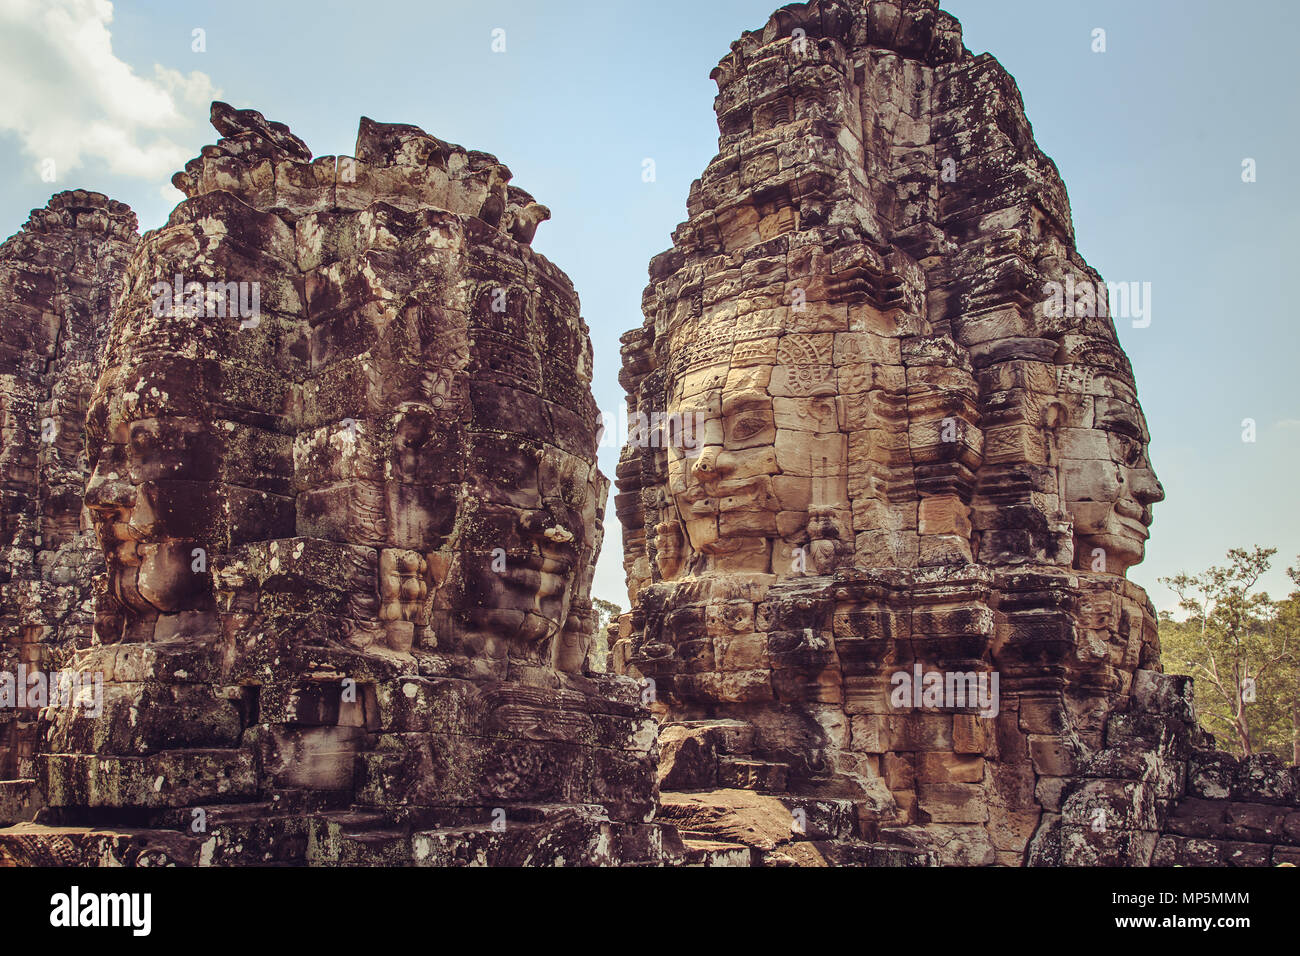 The many-faced temple Bayon is the pearl of the complex Angkor Thom. Siem Reap, Cambodia. - Stock Image